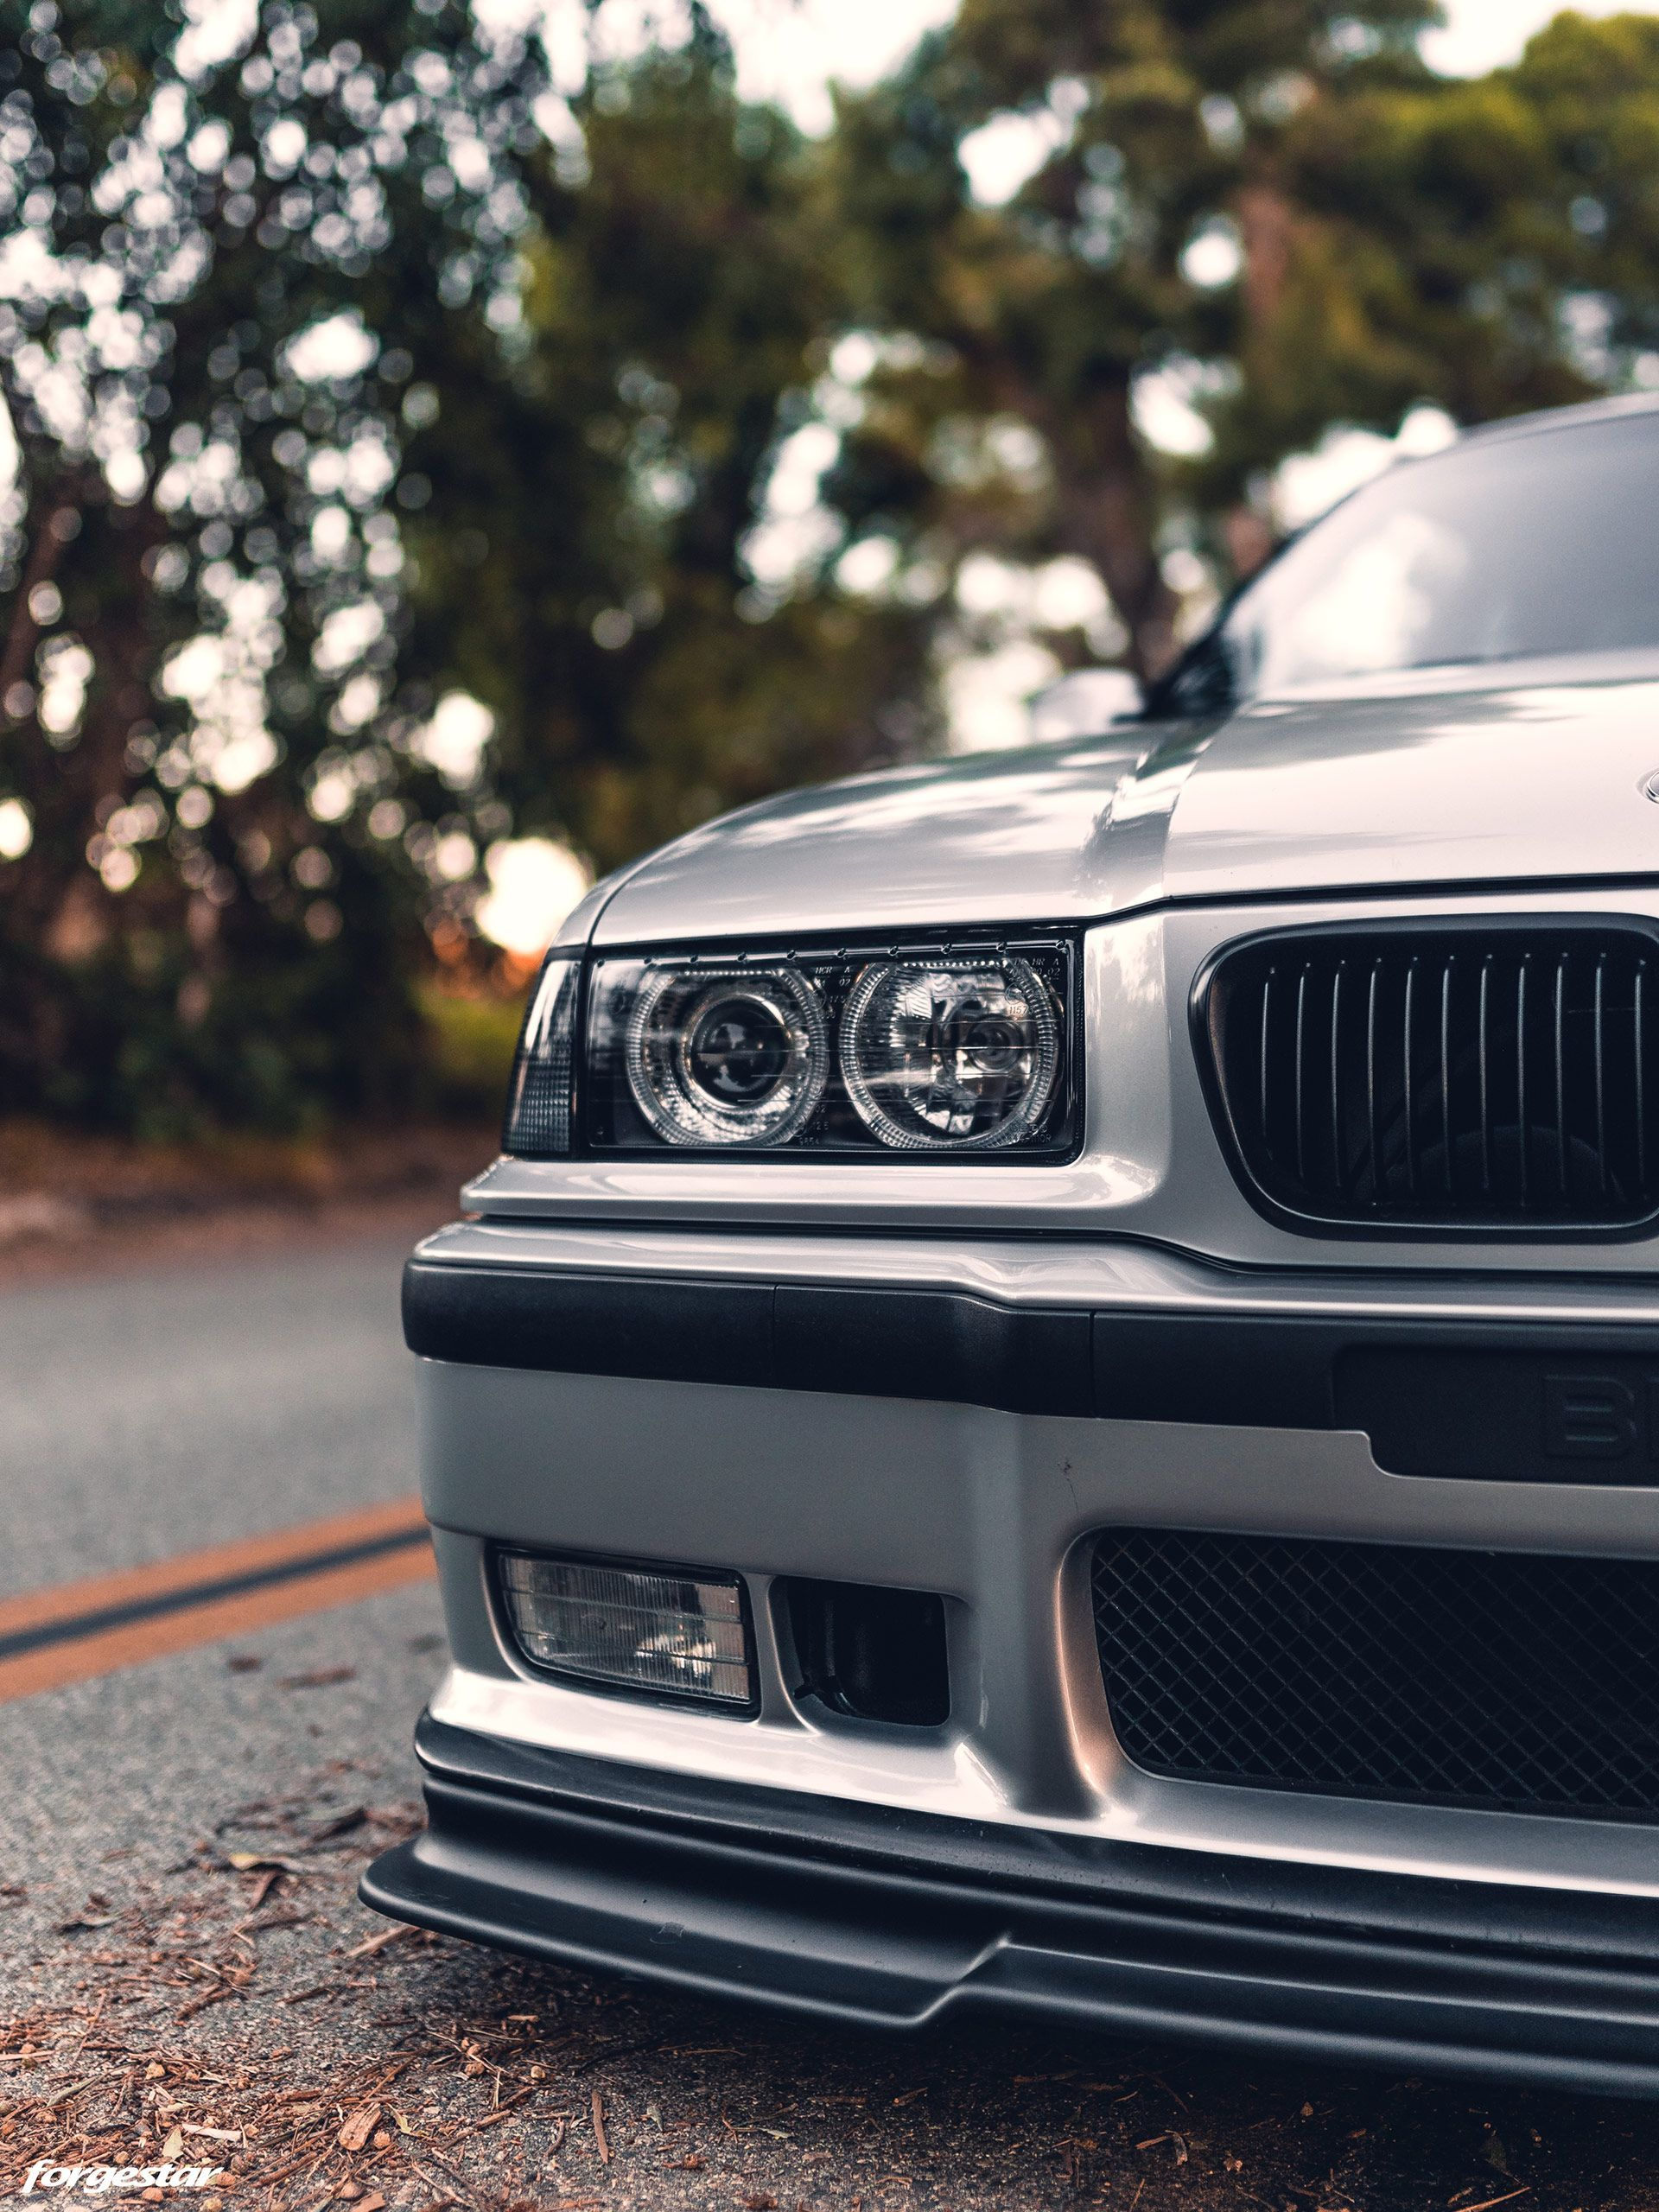 Clean Artic Silver Bmw E36 M3 With Aftermarket Mods And Wheels Bmw E36 M3 Bmw E36 Bmw